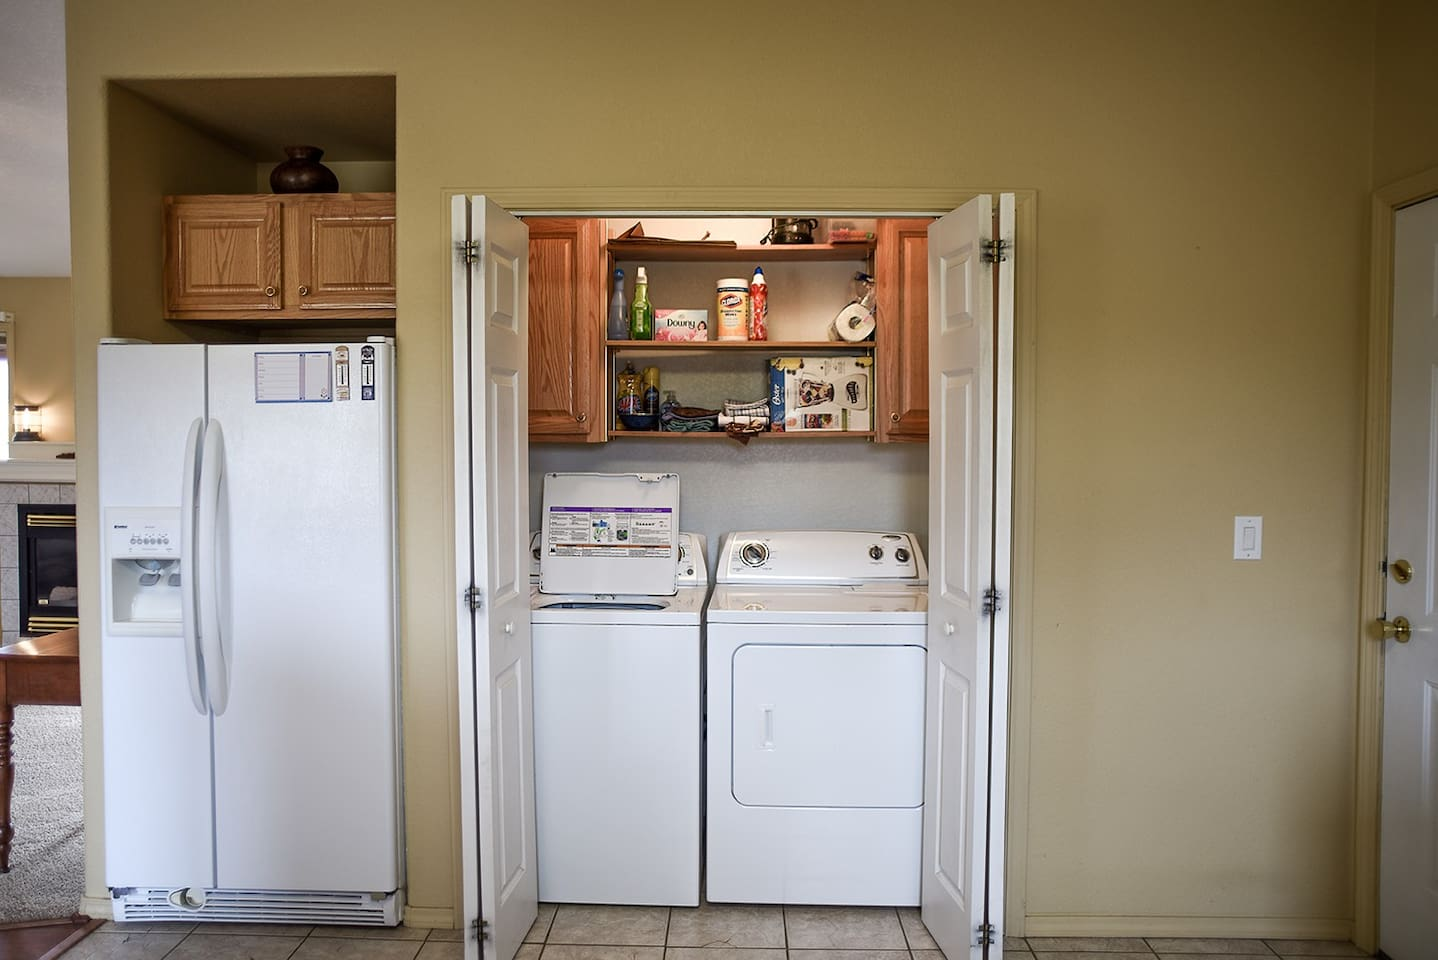 Laundry closet is in the kitchen